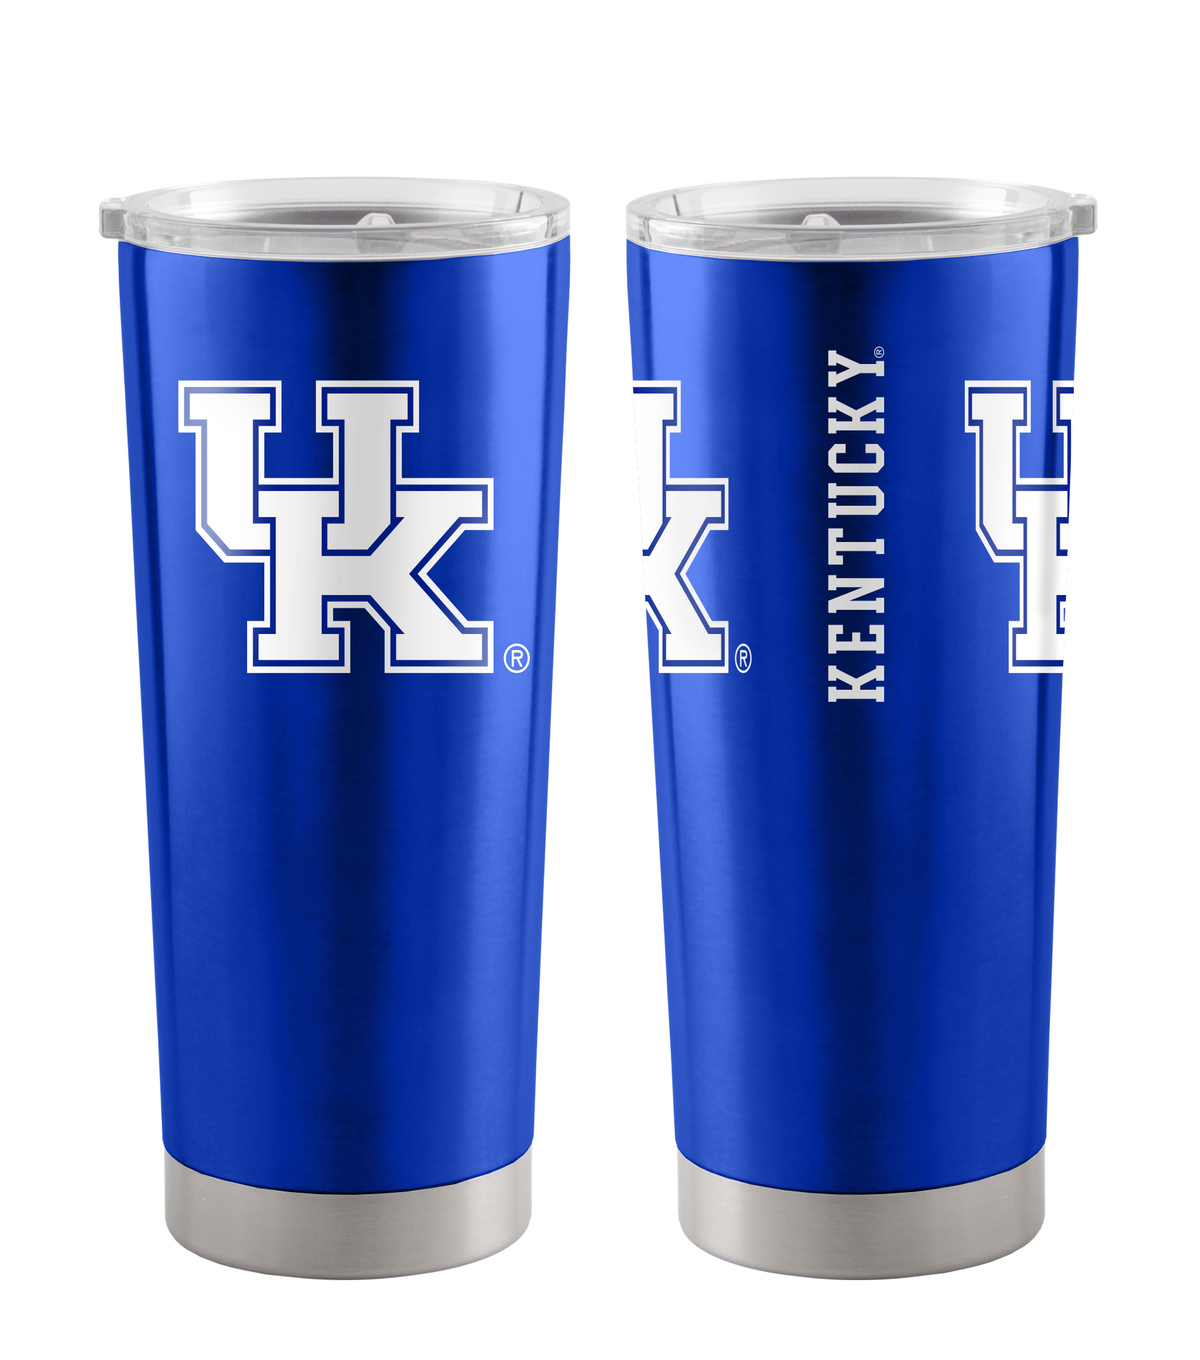 University of Kentucky Wildcats 20 oz Insulated Stainless Steel Tumbler